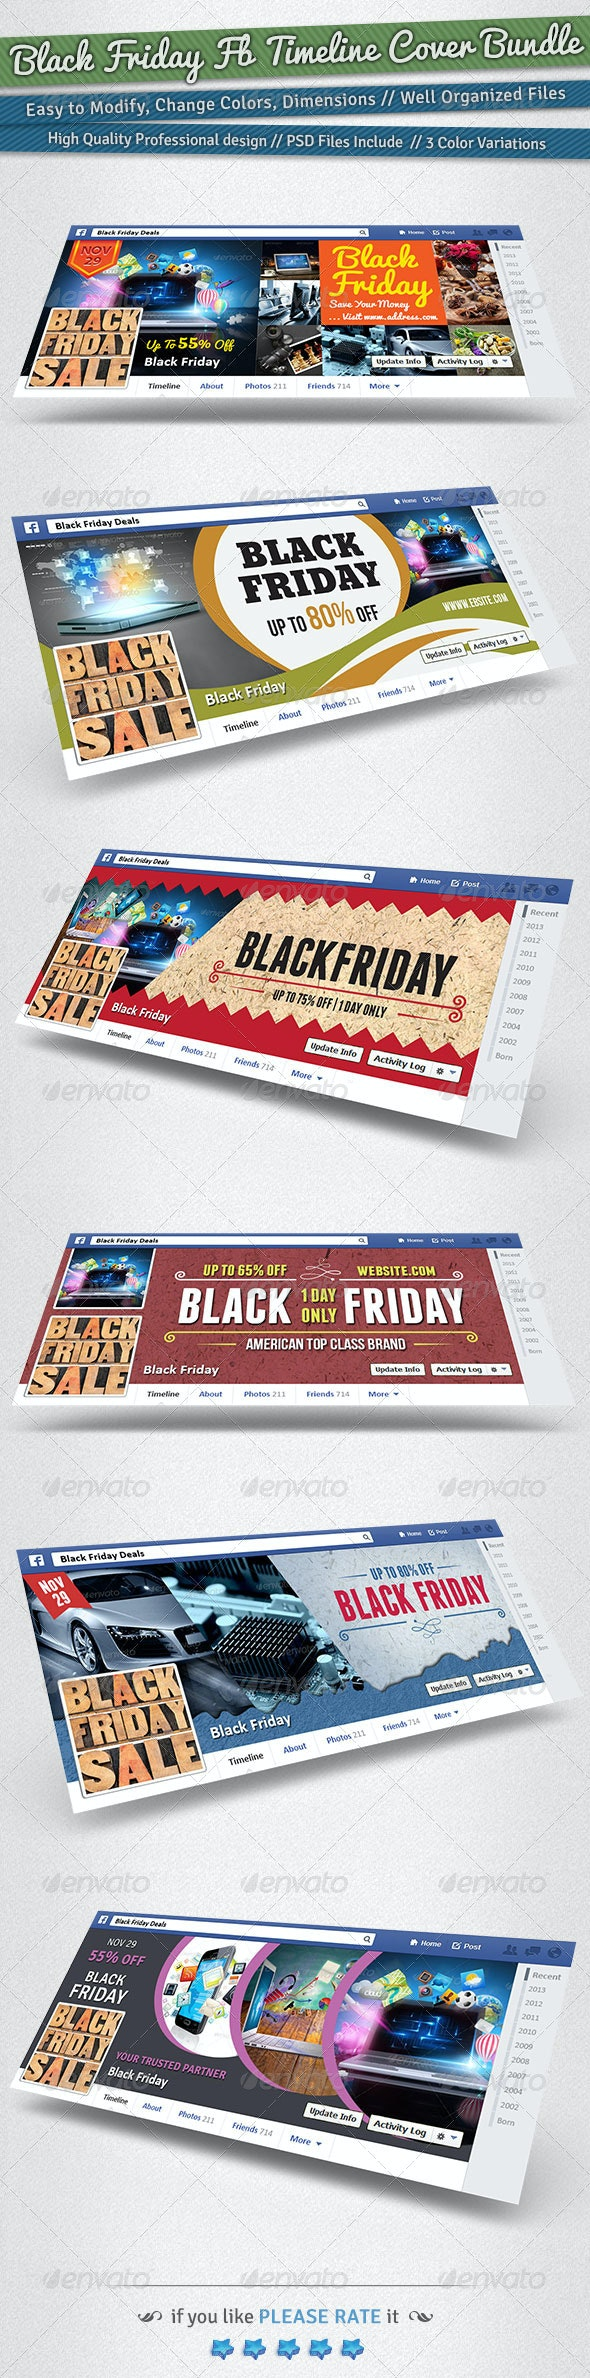 Black Friday / Promotion FB Timeline Cover Bundle - Facebook Timeline Covers Social Media